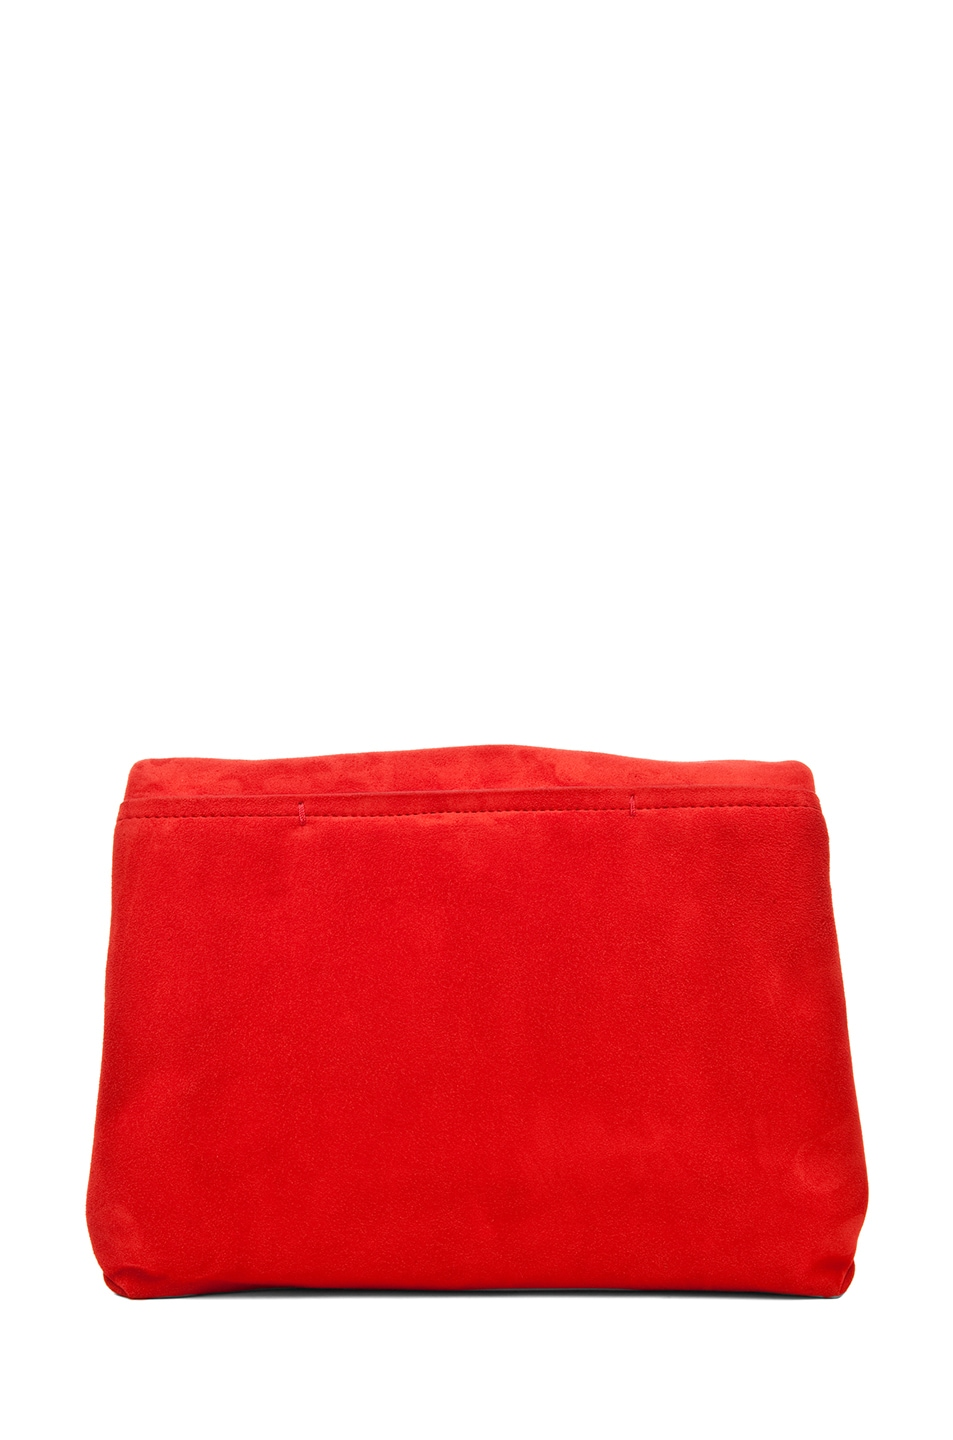 Image 2 of Lanvin Small Shoulder Bag in Poppy